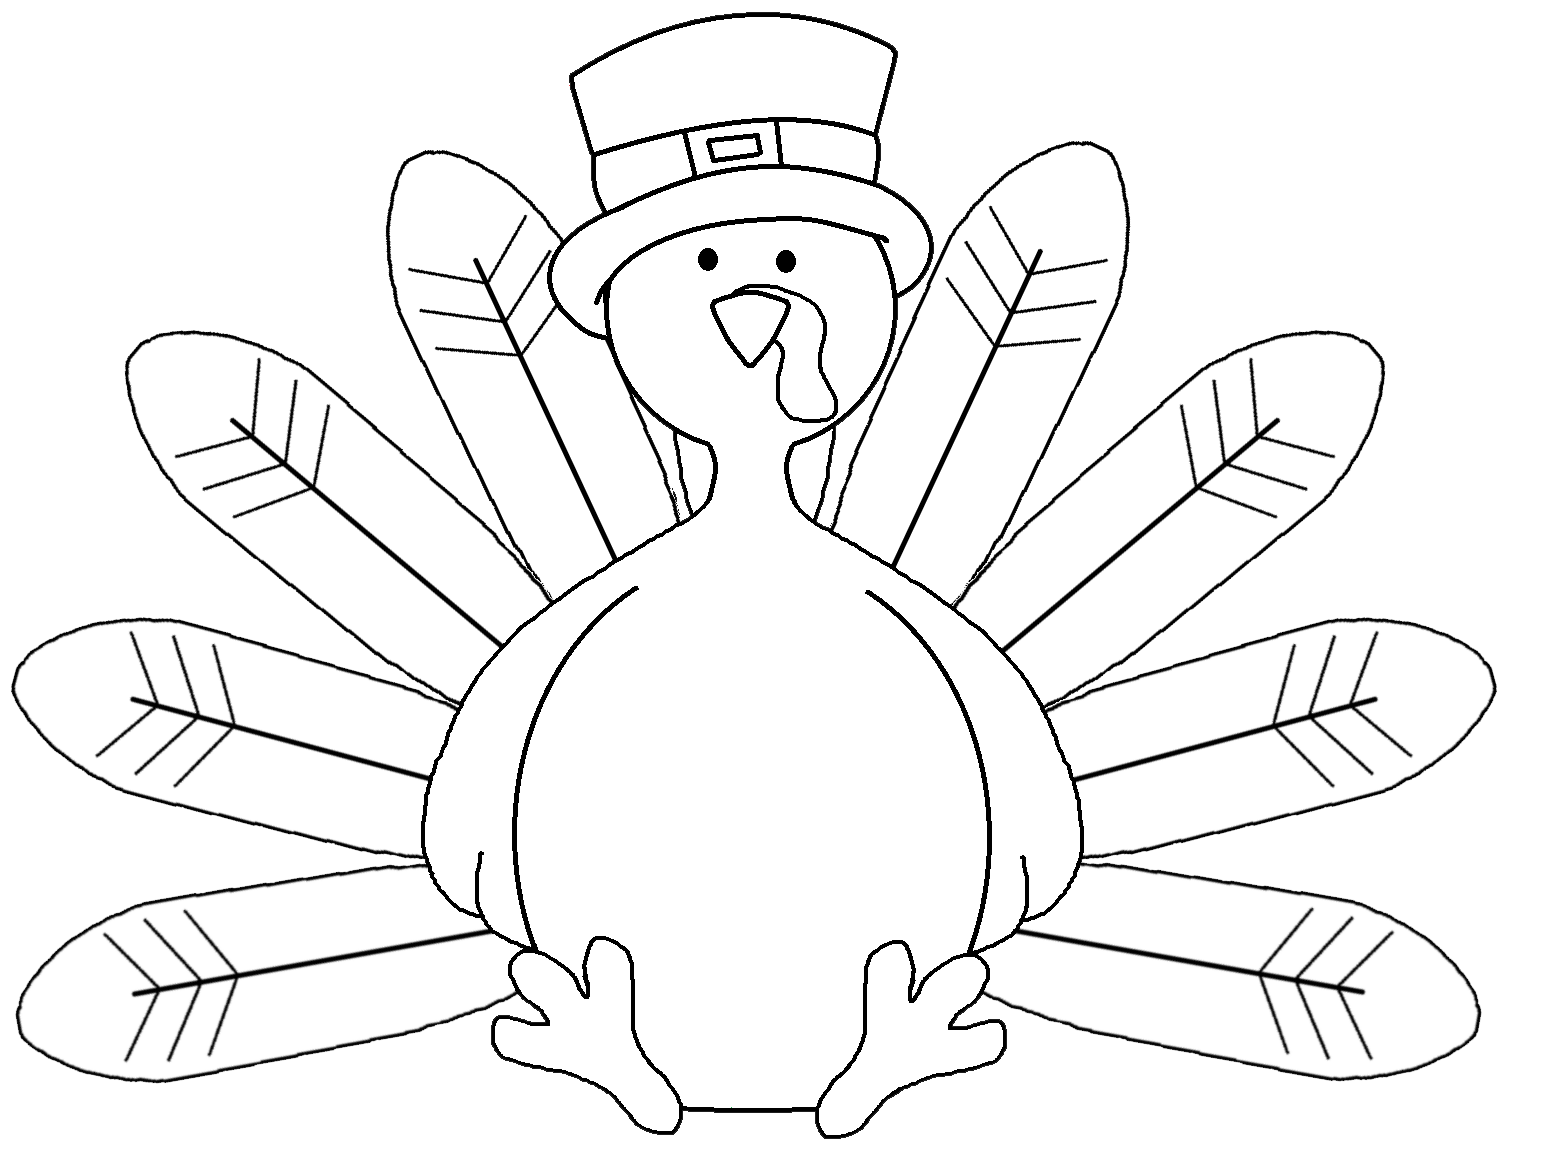 Cute turkey clipart black and white free graphic library 28+ Collection of Large Thanksgiving Turkey Clipart | High quality ... graphic library